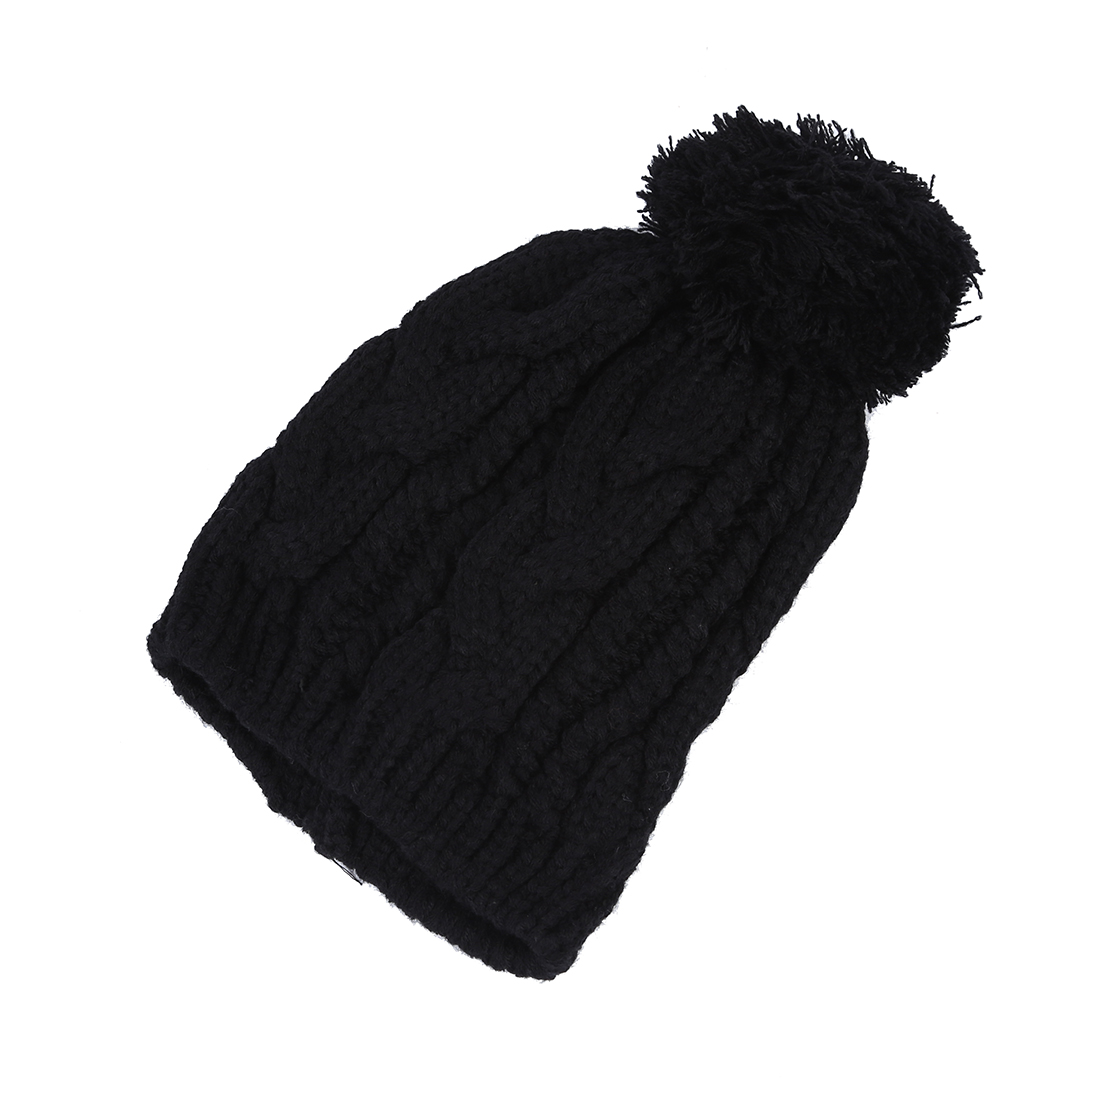 34d7231e74c NEW Warm Winter Unisex Men Women Knit Bobble Beanie Baggy Hat 3color-in  Skullies   Beanies from Men s Clothing   Accessories on Aliexpress.com